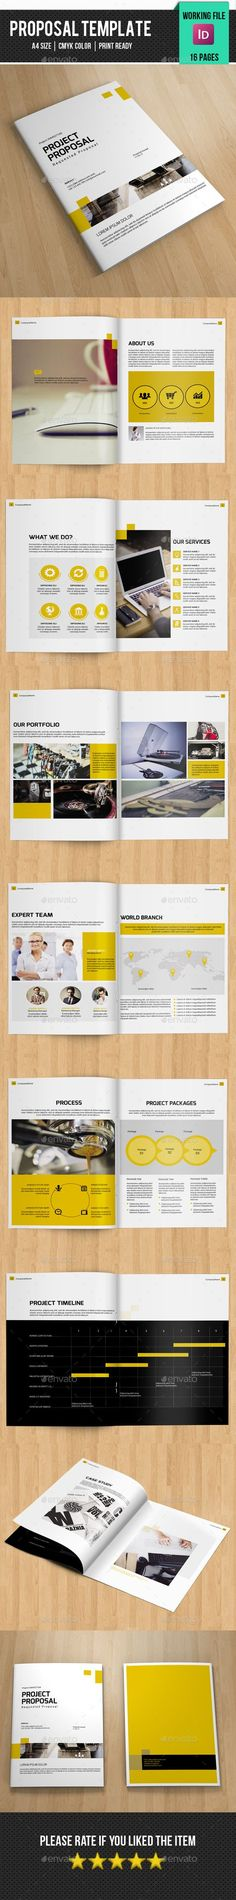 Business Project Proposal Template #design Download: http://graphicriver.net/item/business-project-proposal-templatev280/12176091?ref=ksioks: